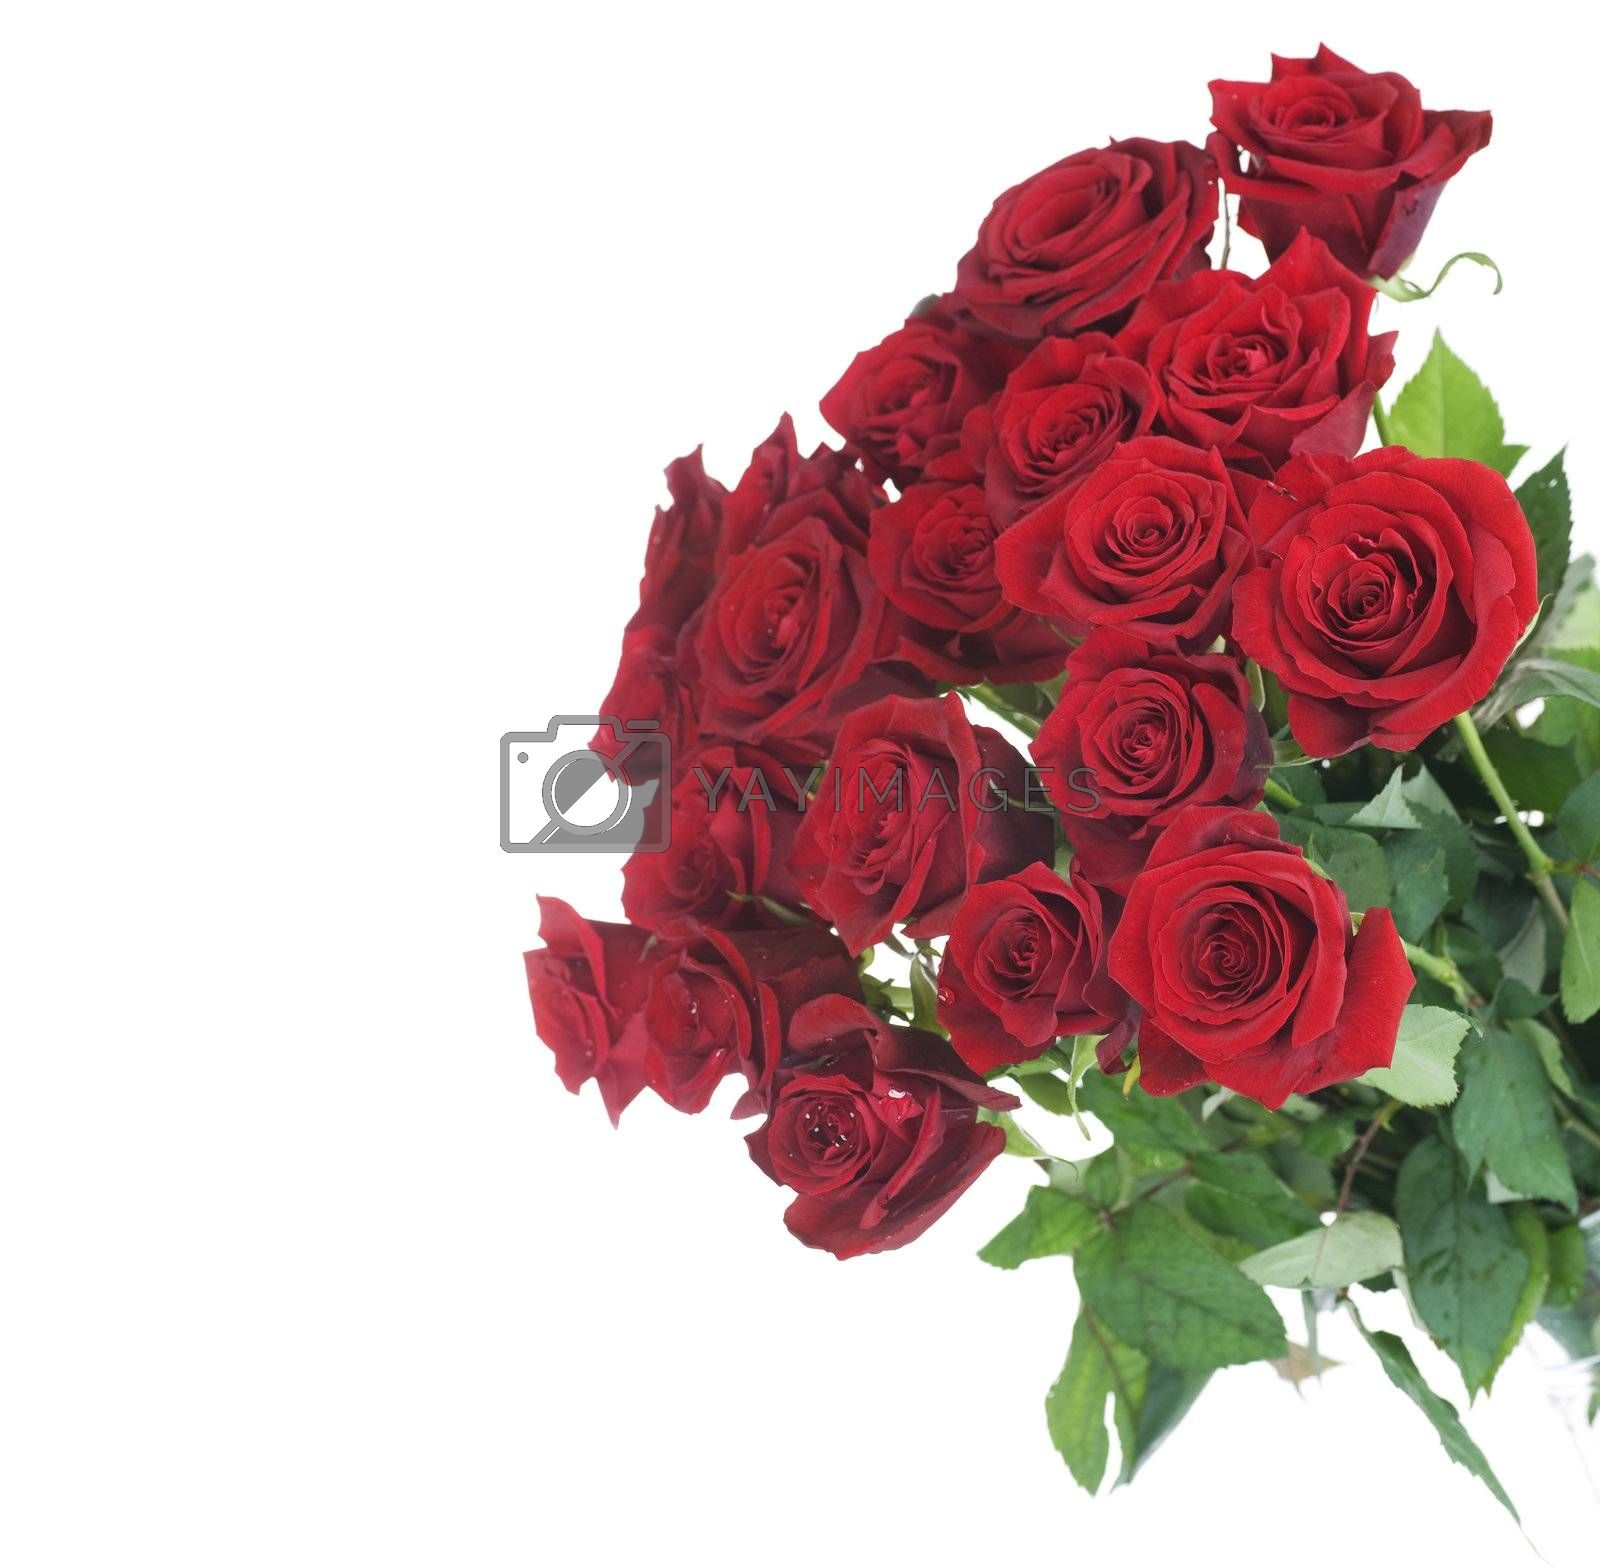 Big Red Roses Bouquet by Subbotina Anna